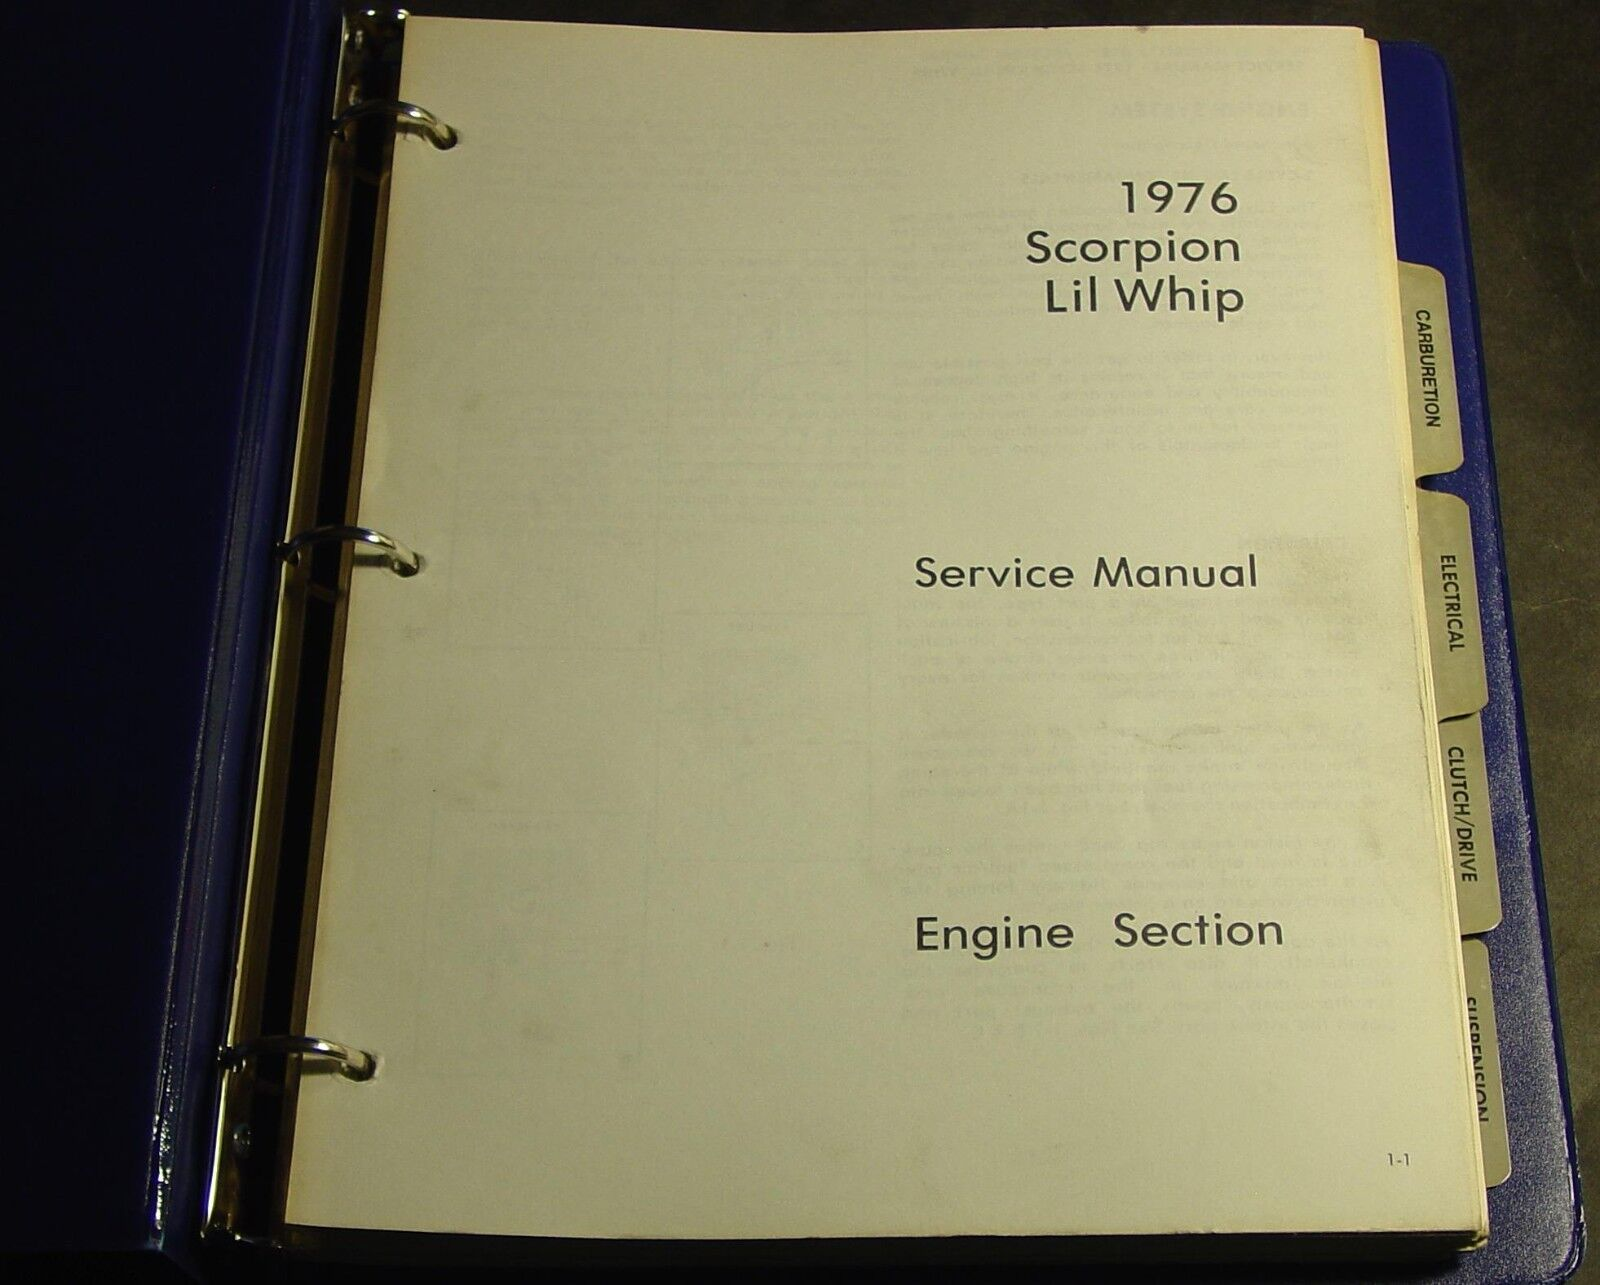 1976 SCORPION LIL WHIP SNOWMOBILE SERVICE MANUAL in BINDER (839)